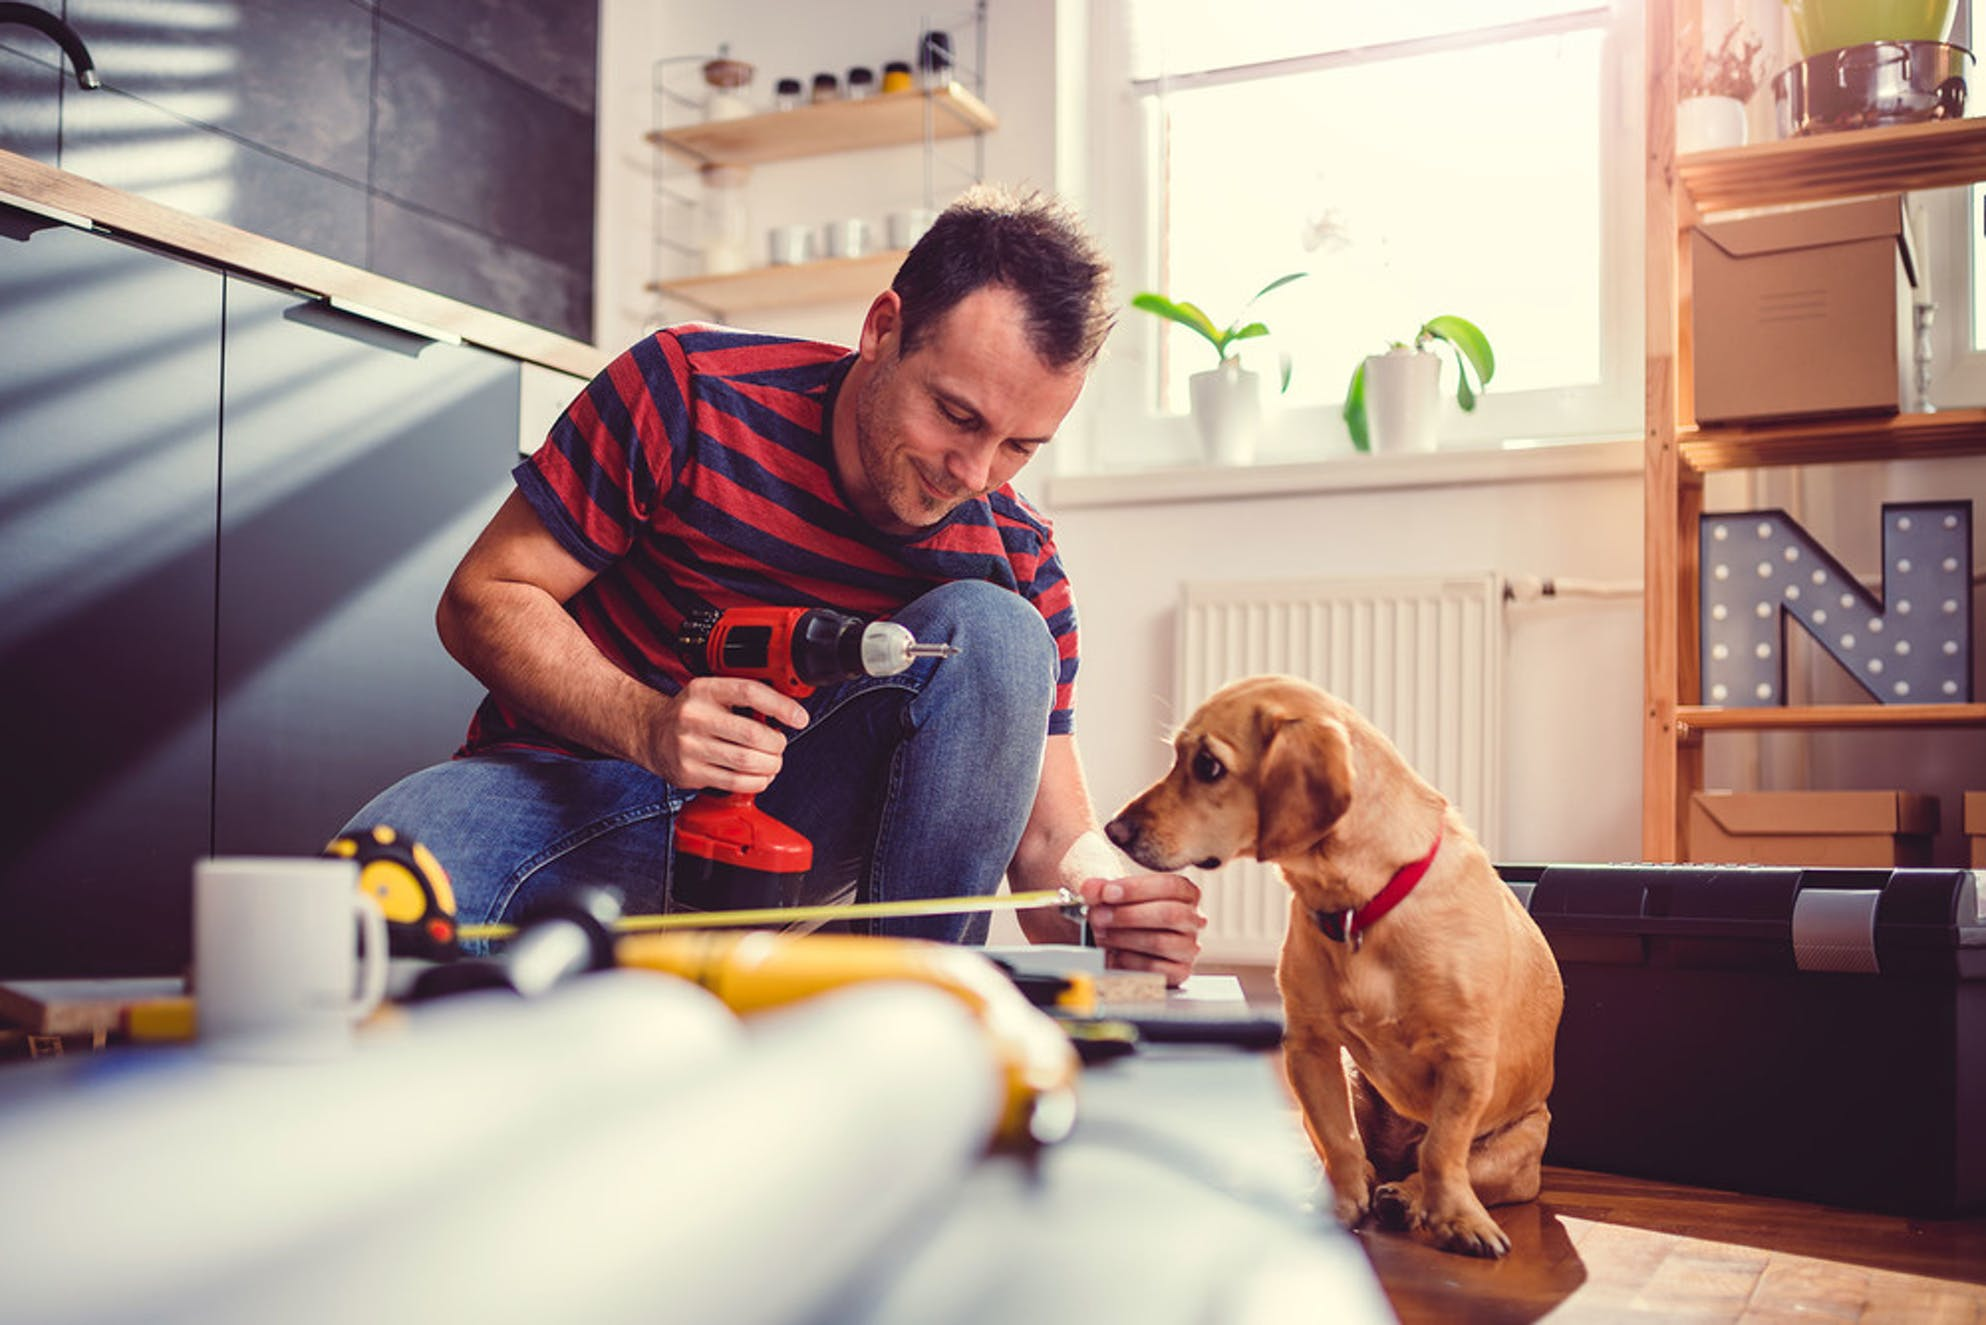 What to do with a tax refund: make home improvements